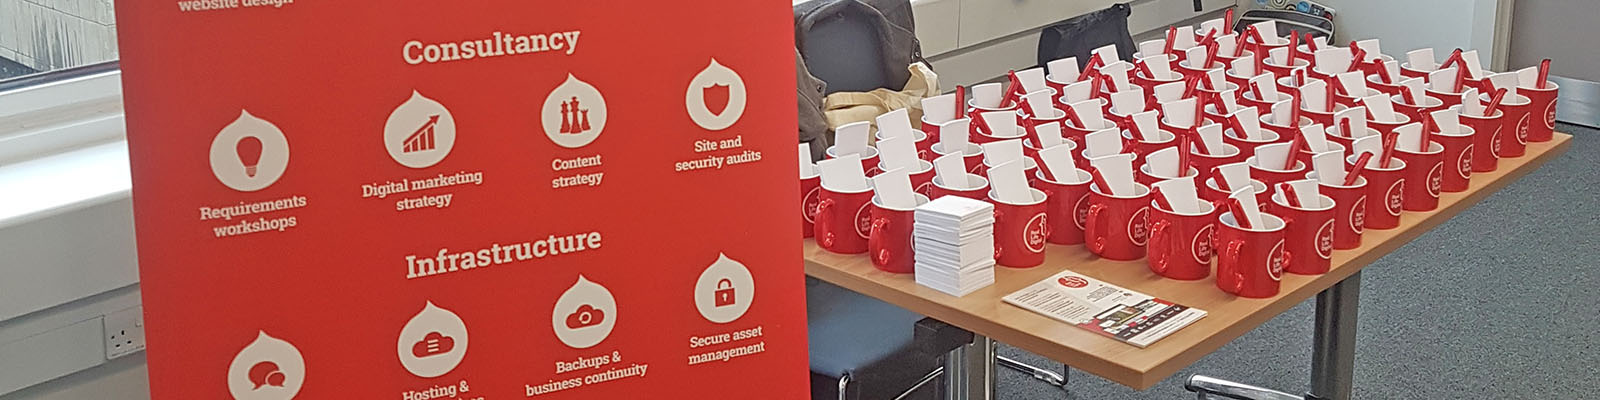 Real Life Digital merchandise stand at DrupalCamp London 2017.